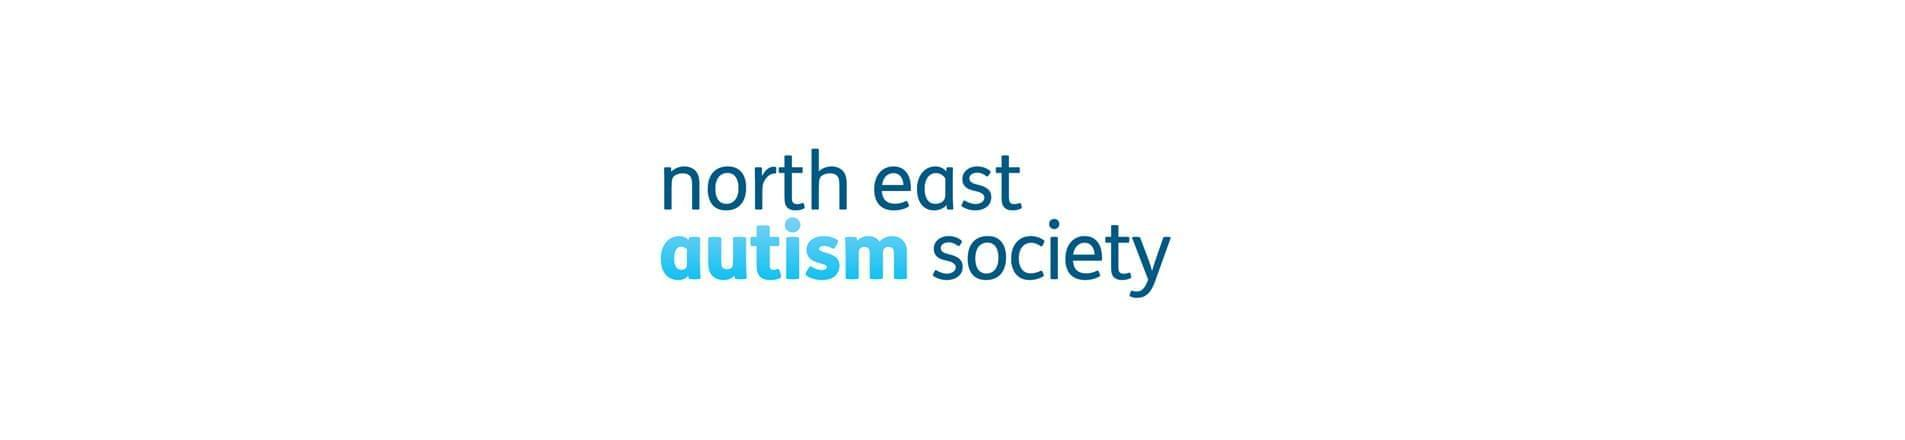 North East Autism Society logo